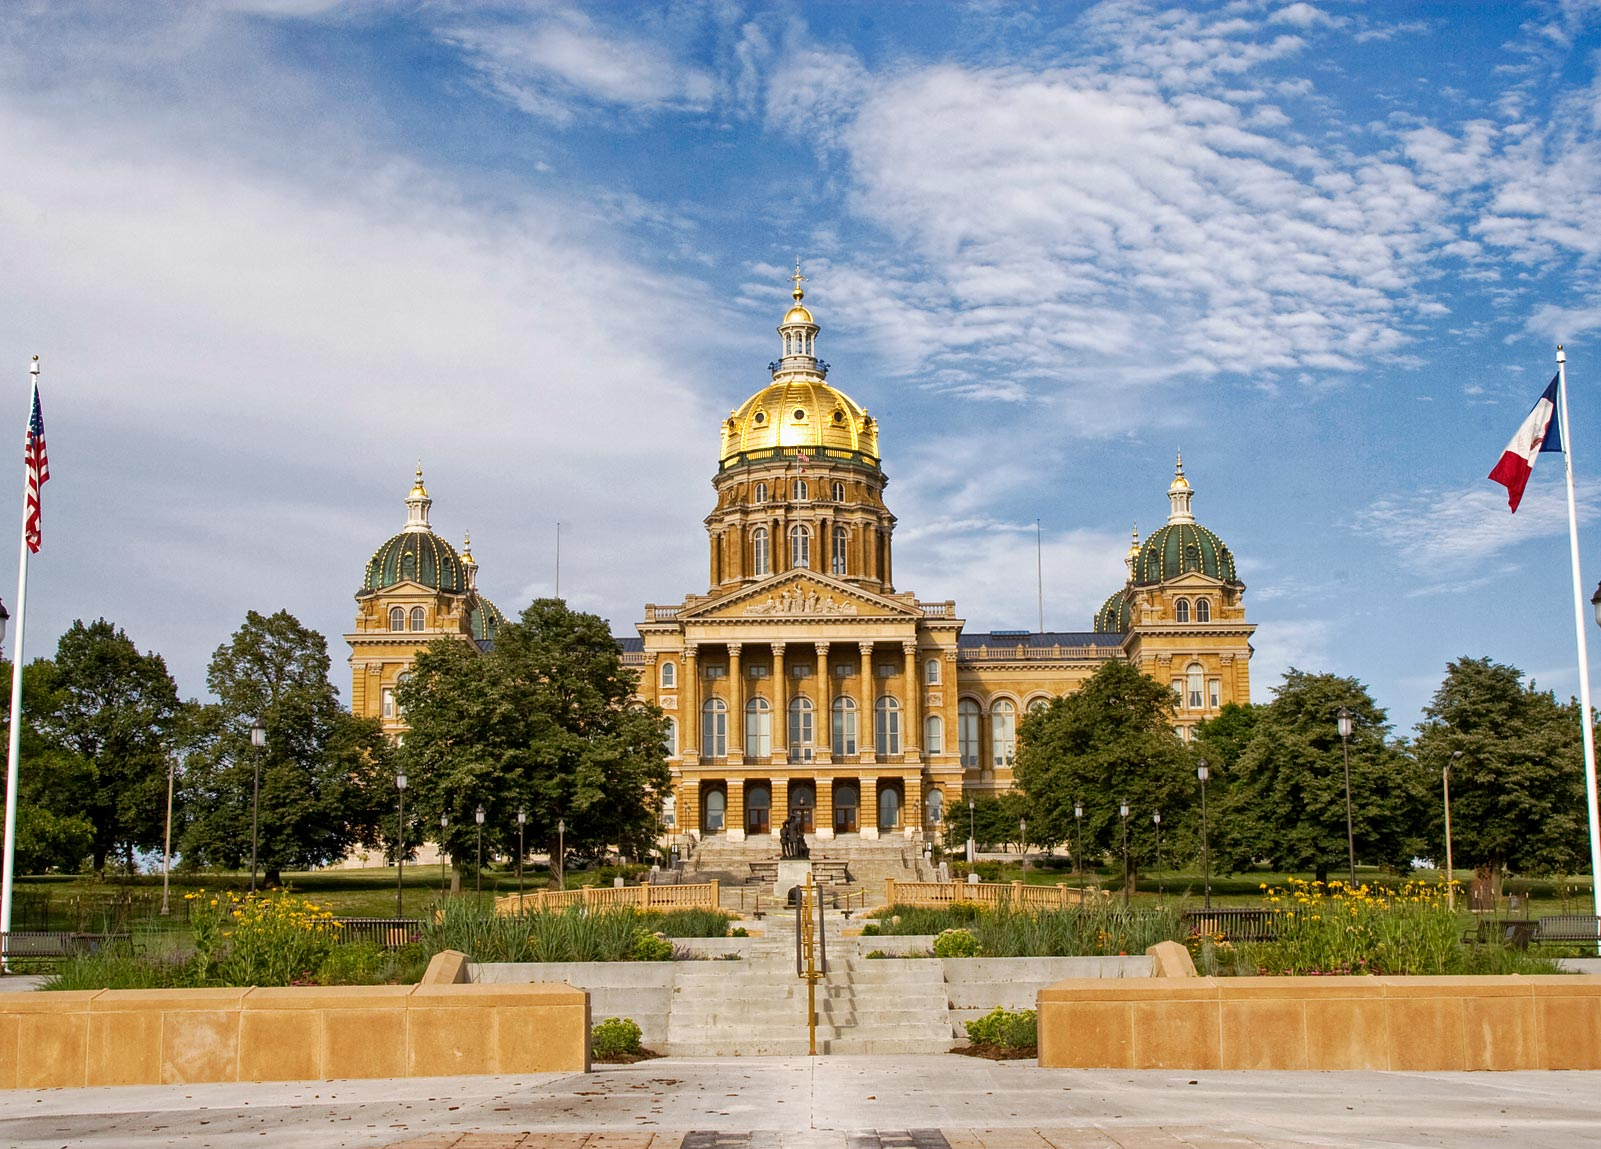 Attractions in Iowa